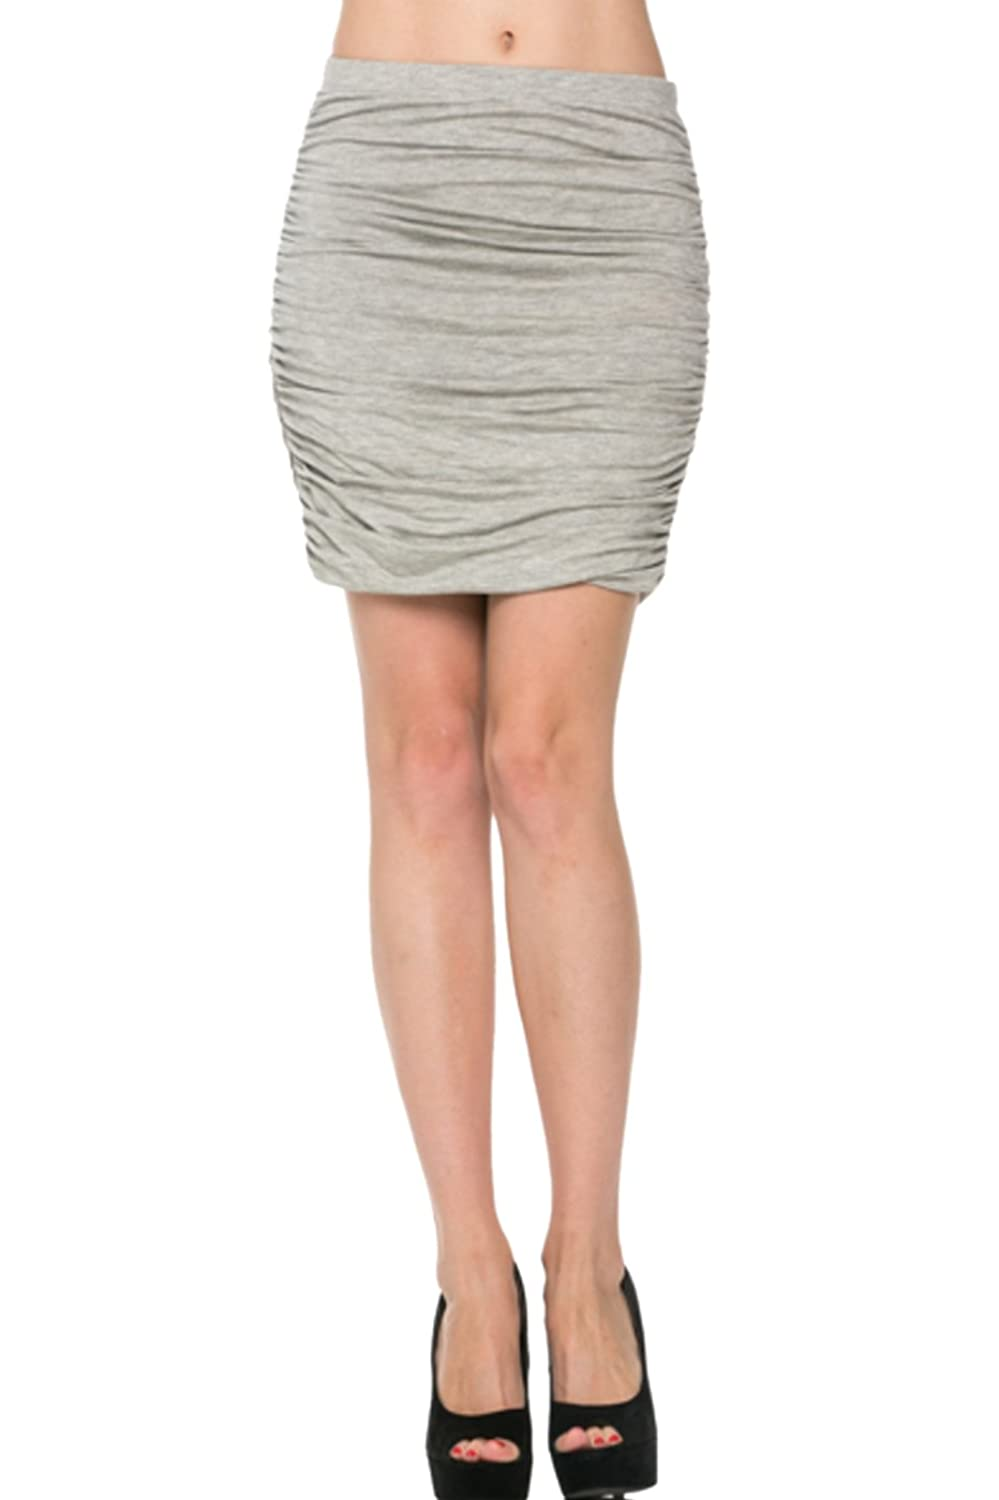 2LUV Women's Dressy Ruched Bodycon Mini Skirt